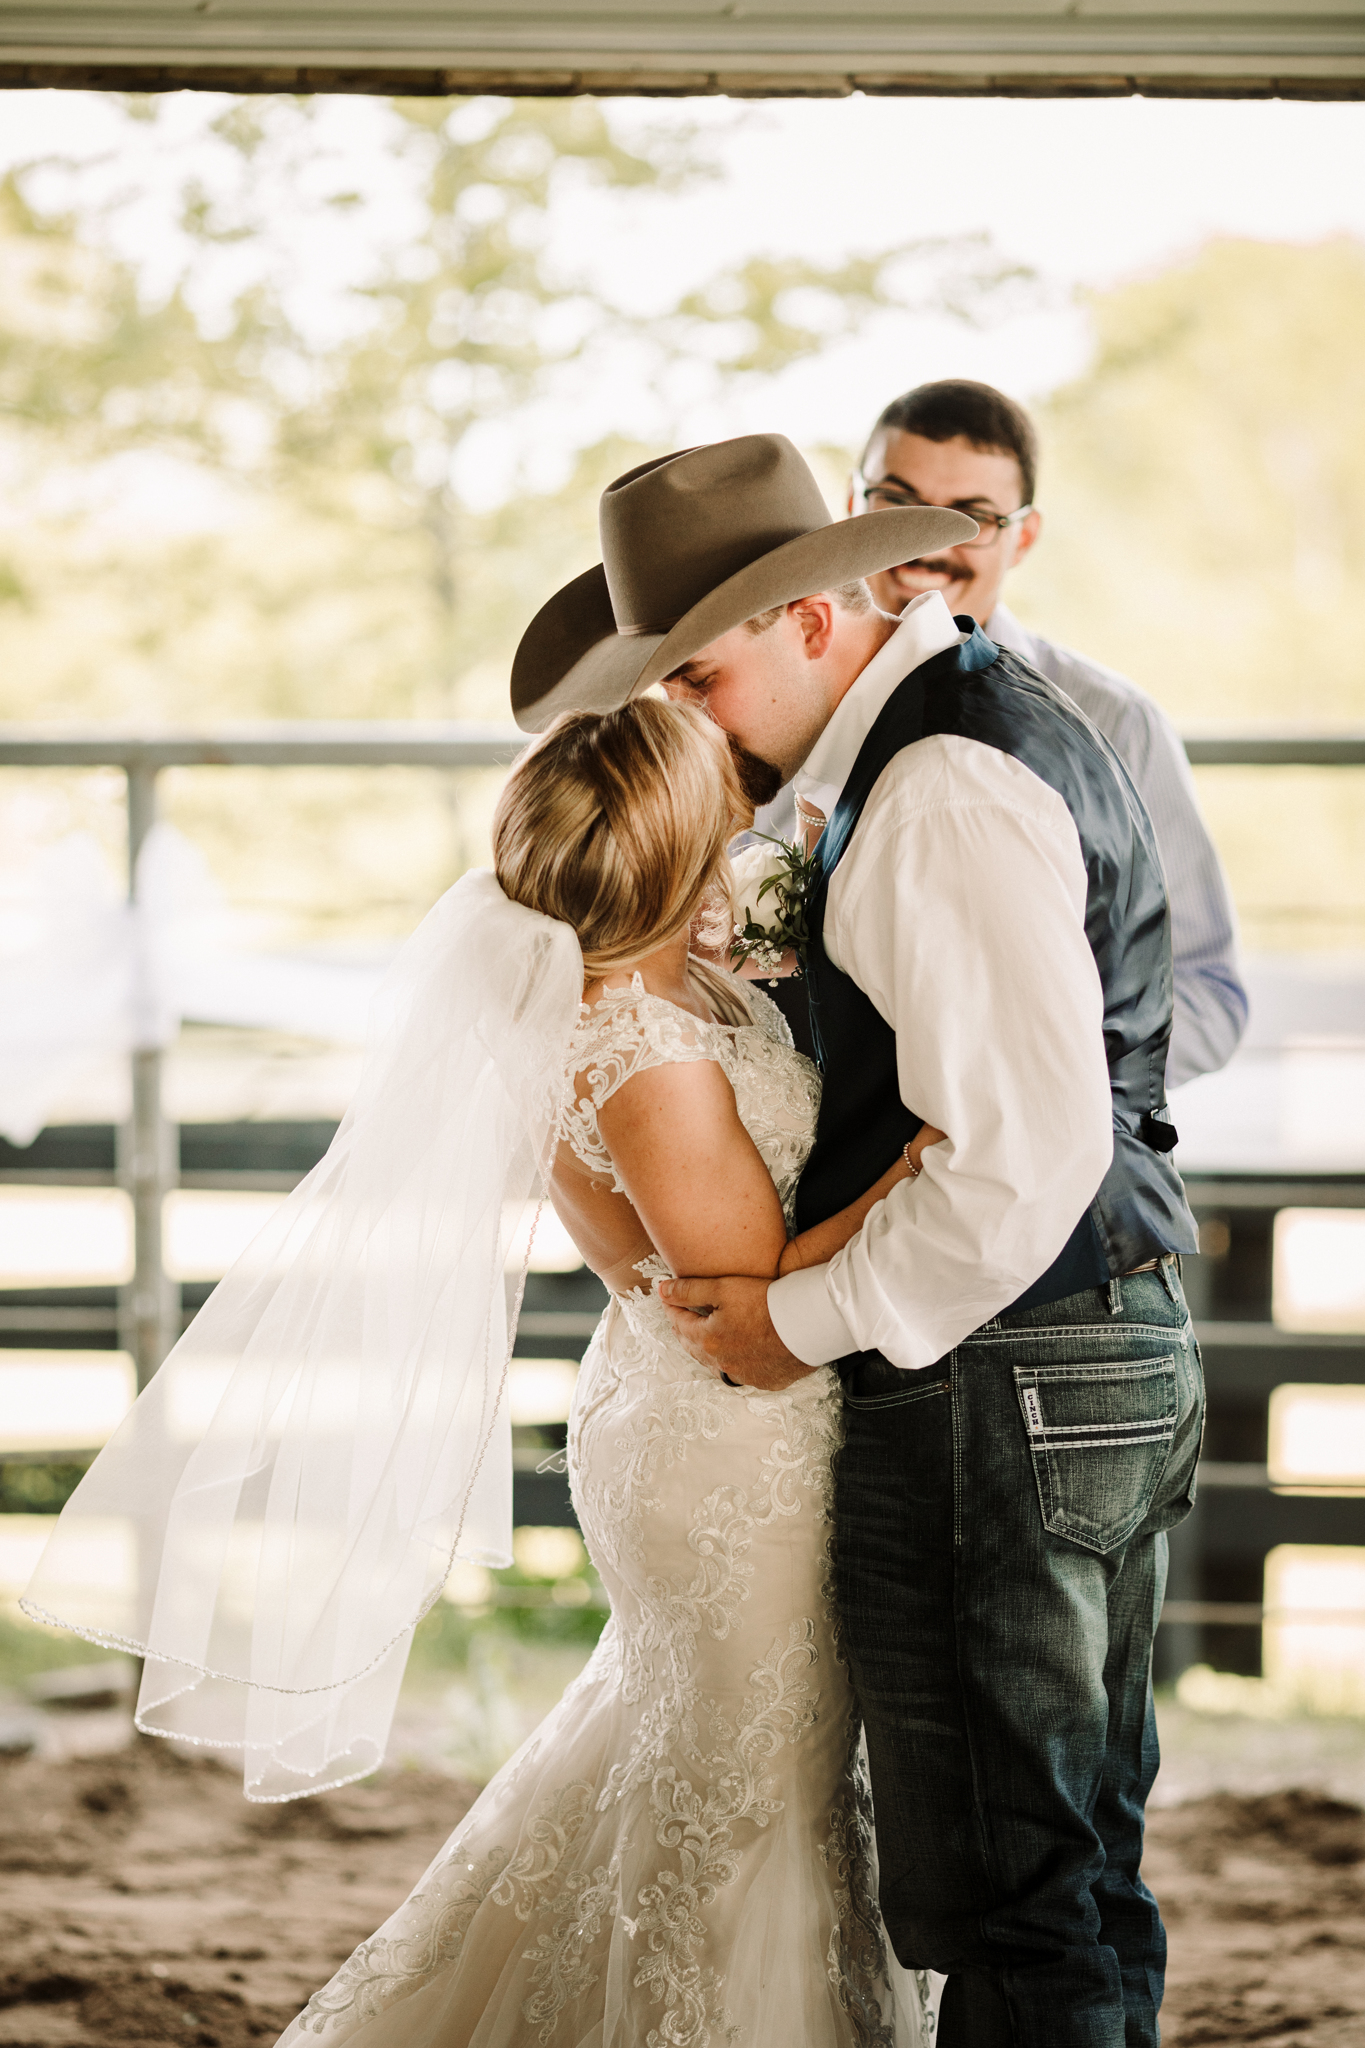 Minimalistic Barn Wedding featured on Nashville Bride Guide